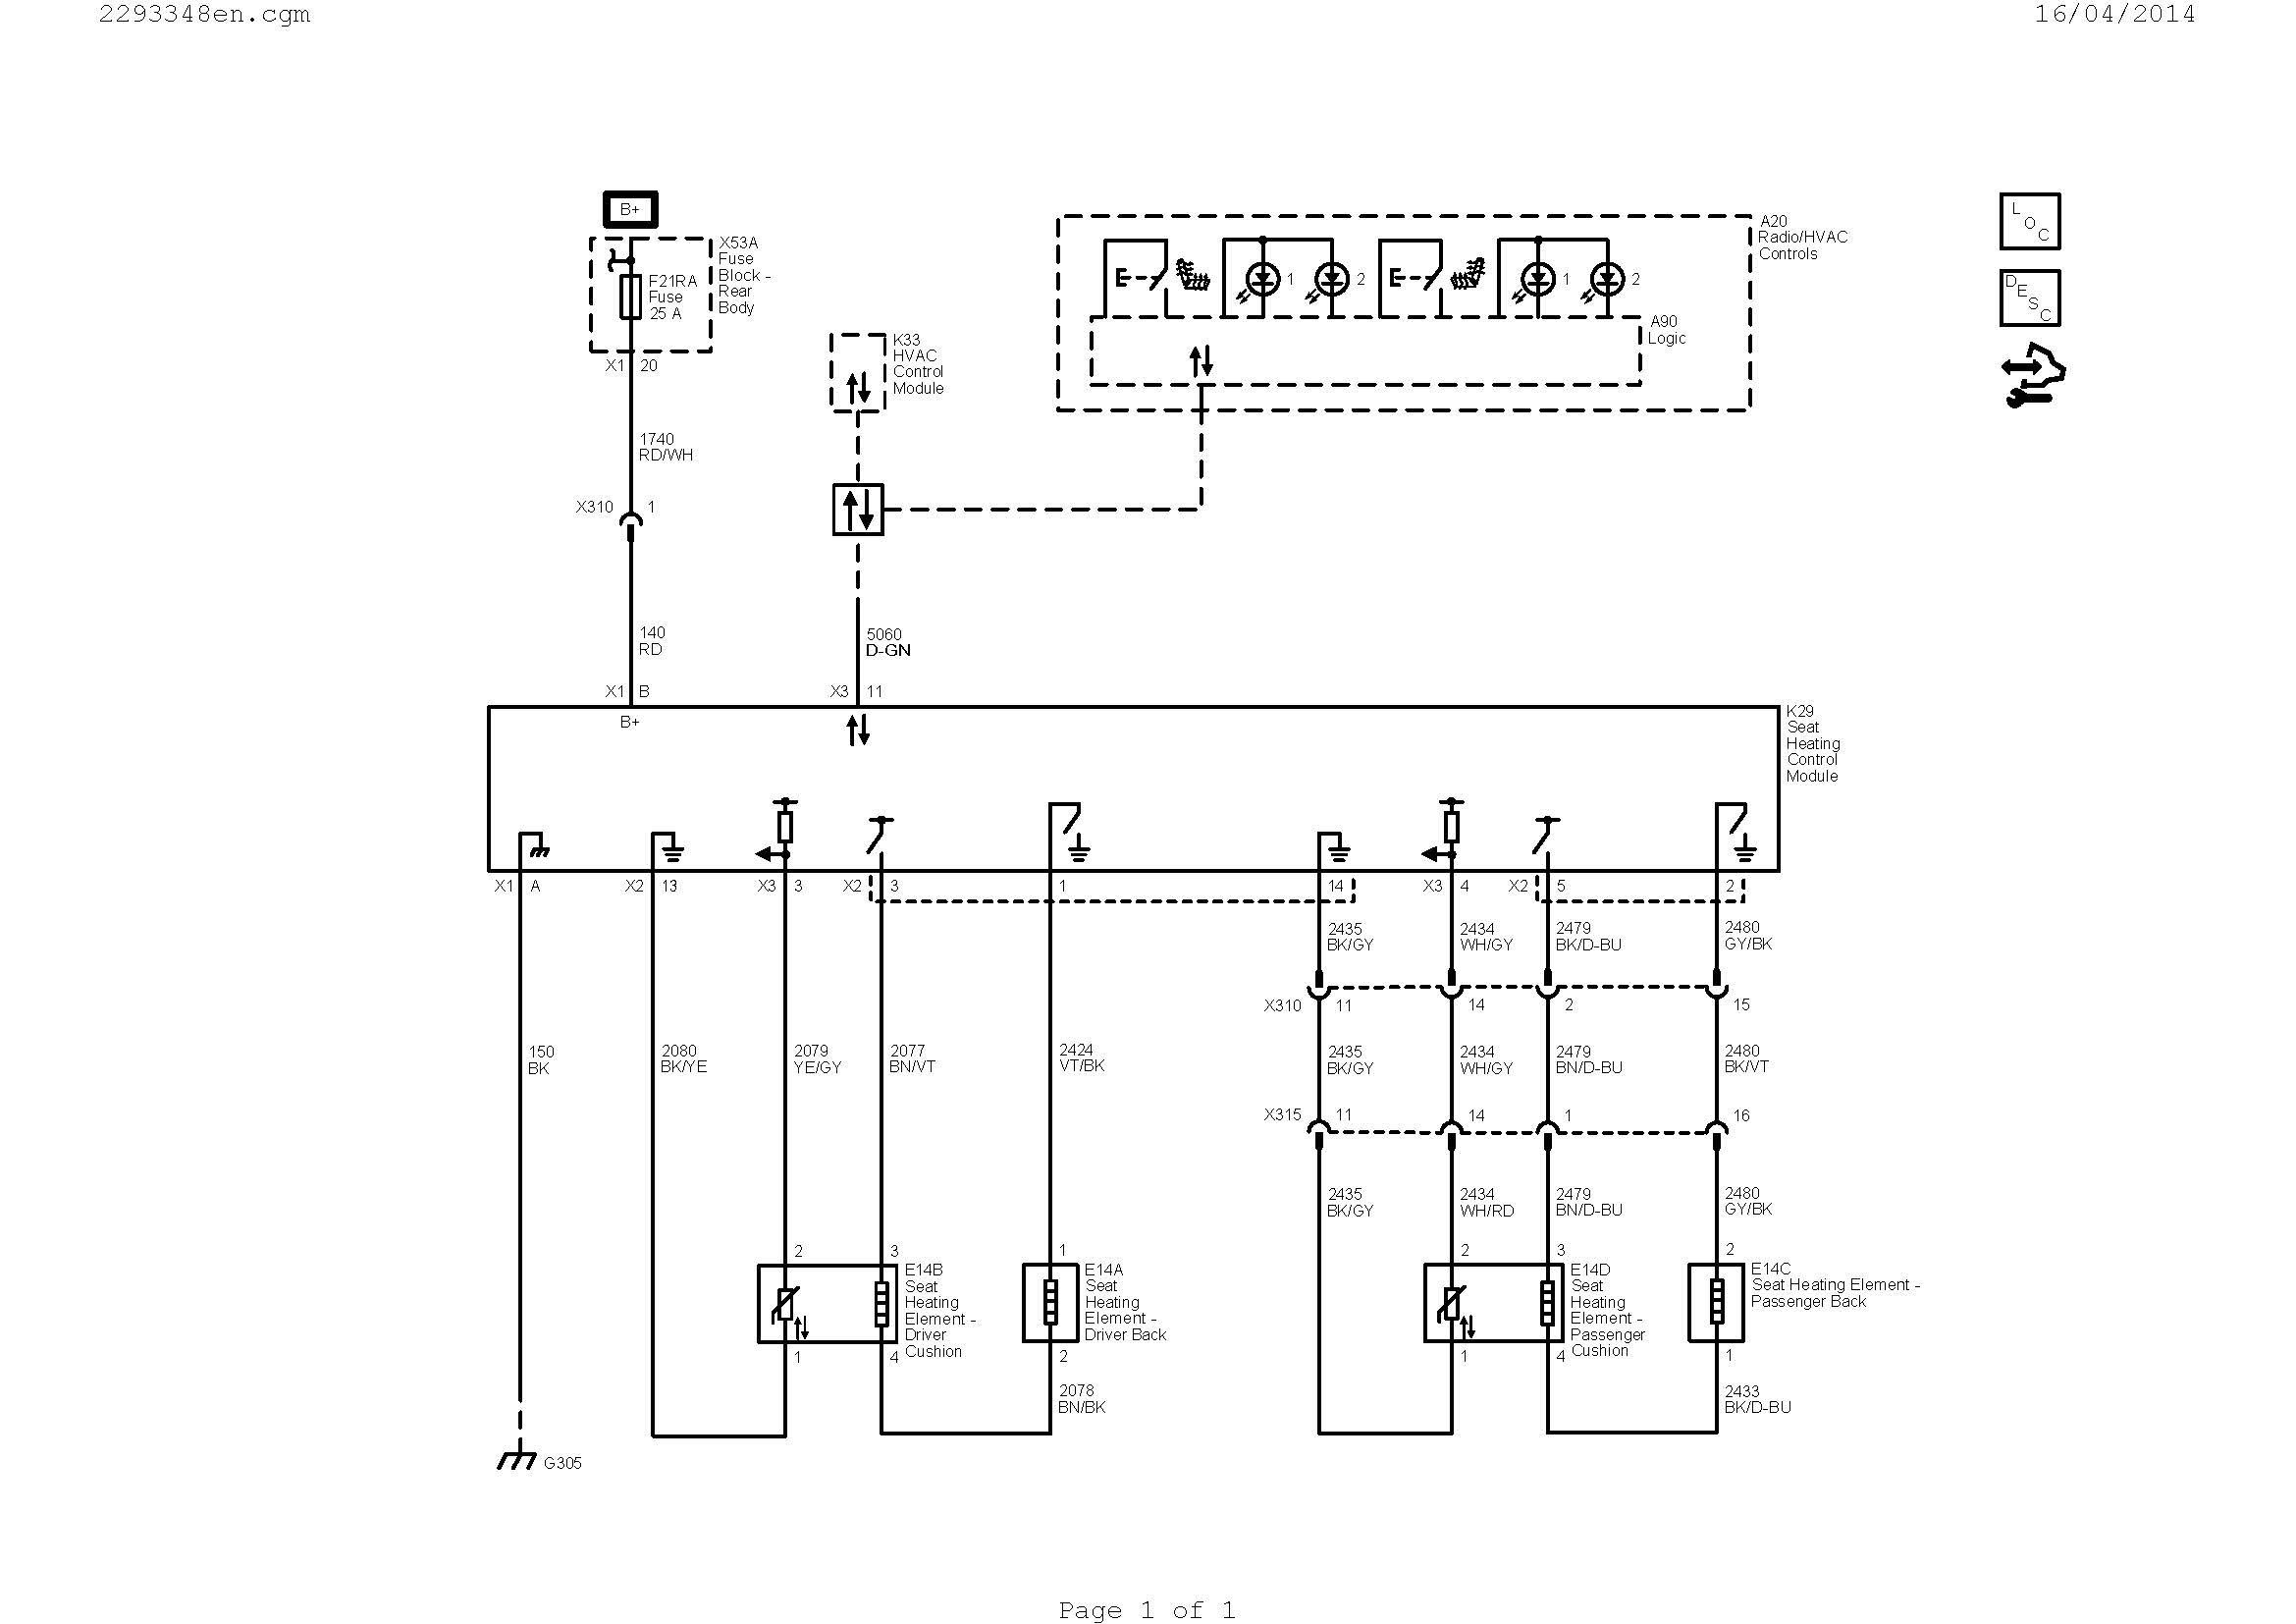 electric guitar wiring diagram Collection-Wiring Diagrams for Electrical New Wiring Diagram Guitar Fresh Hvac Diagram Best Hvac Diagram 0d 12-l